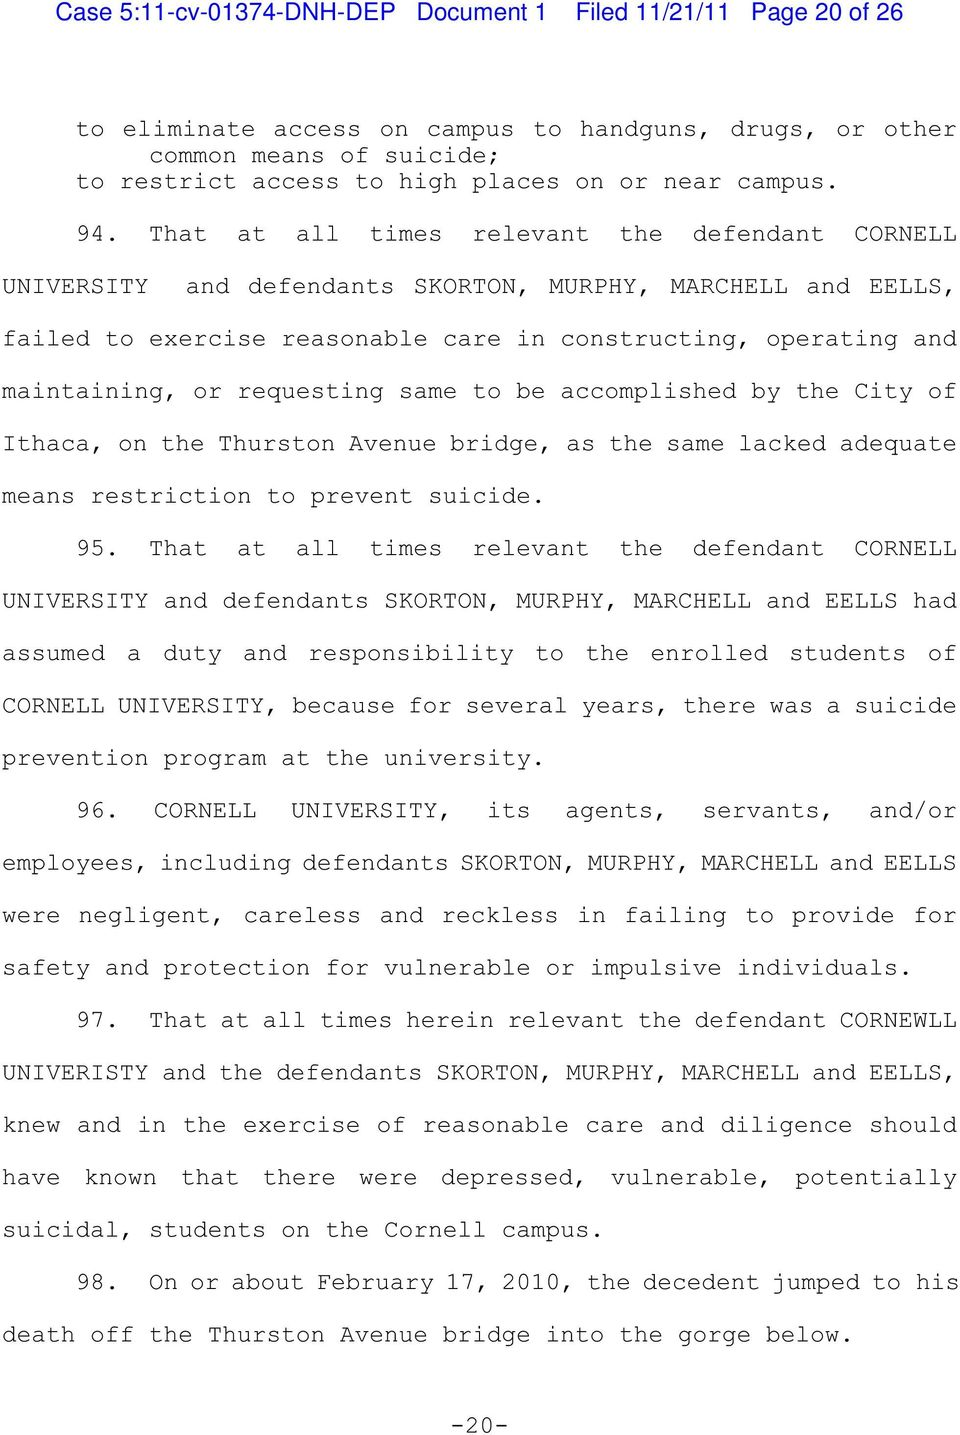 That at all times relevant the defendant CORNELL UNIVERSITY and defendants SKORTON, MURPHY, MARCHELL and EELLS, failed to exercise reasonable care in constructing, operating and maintaining, or